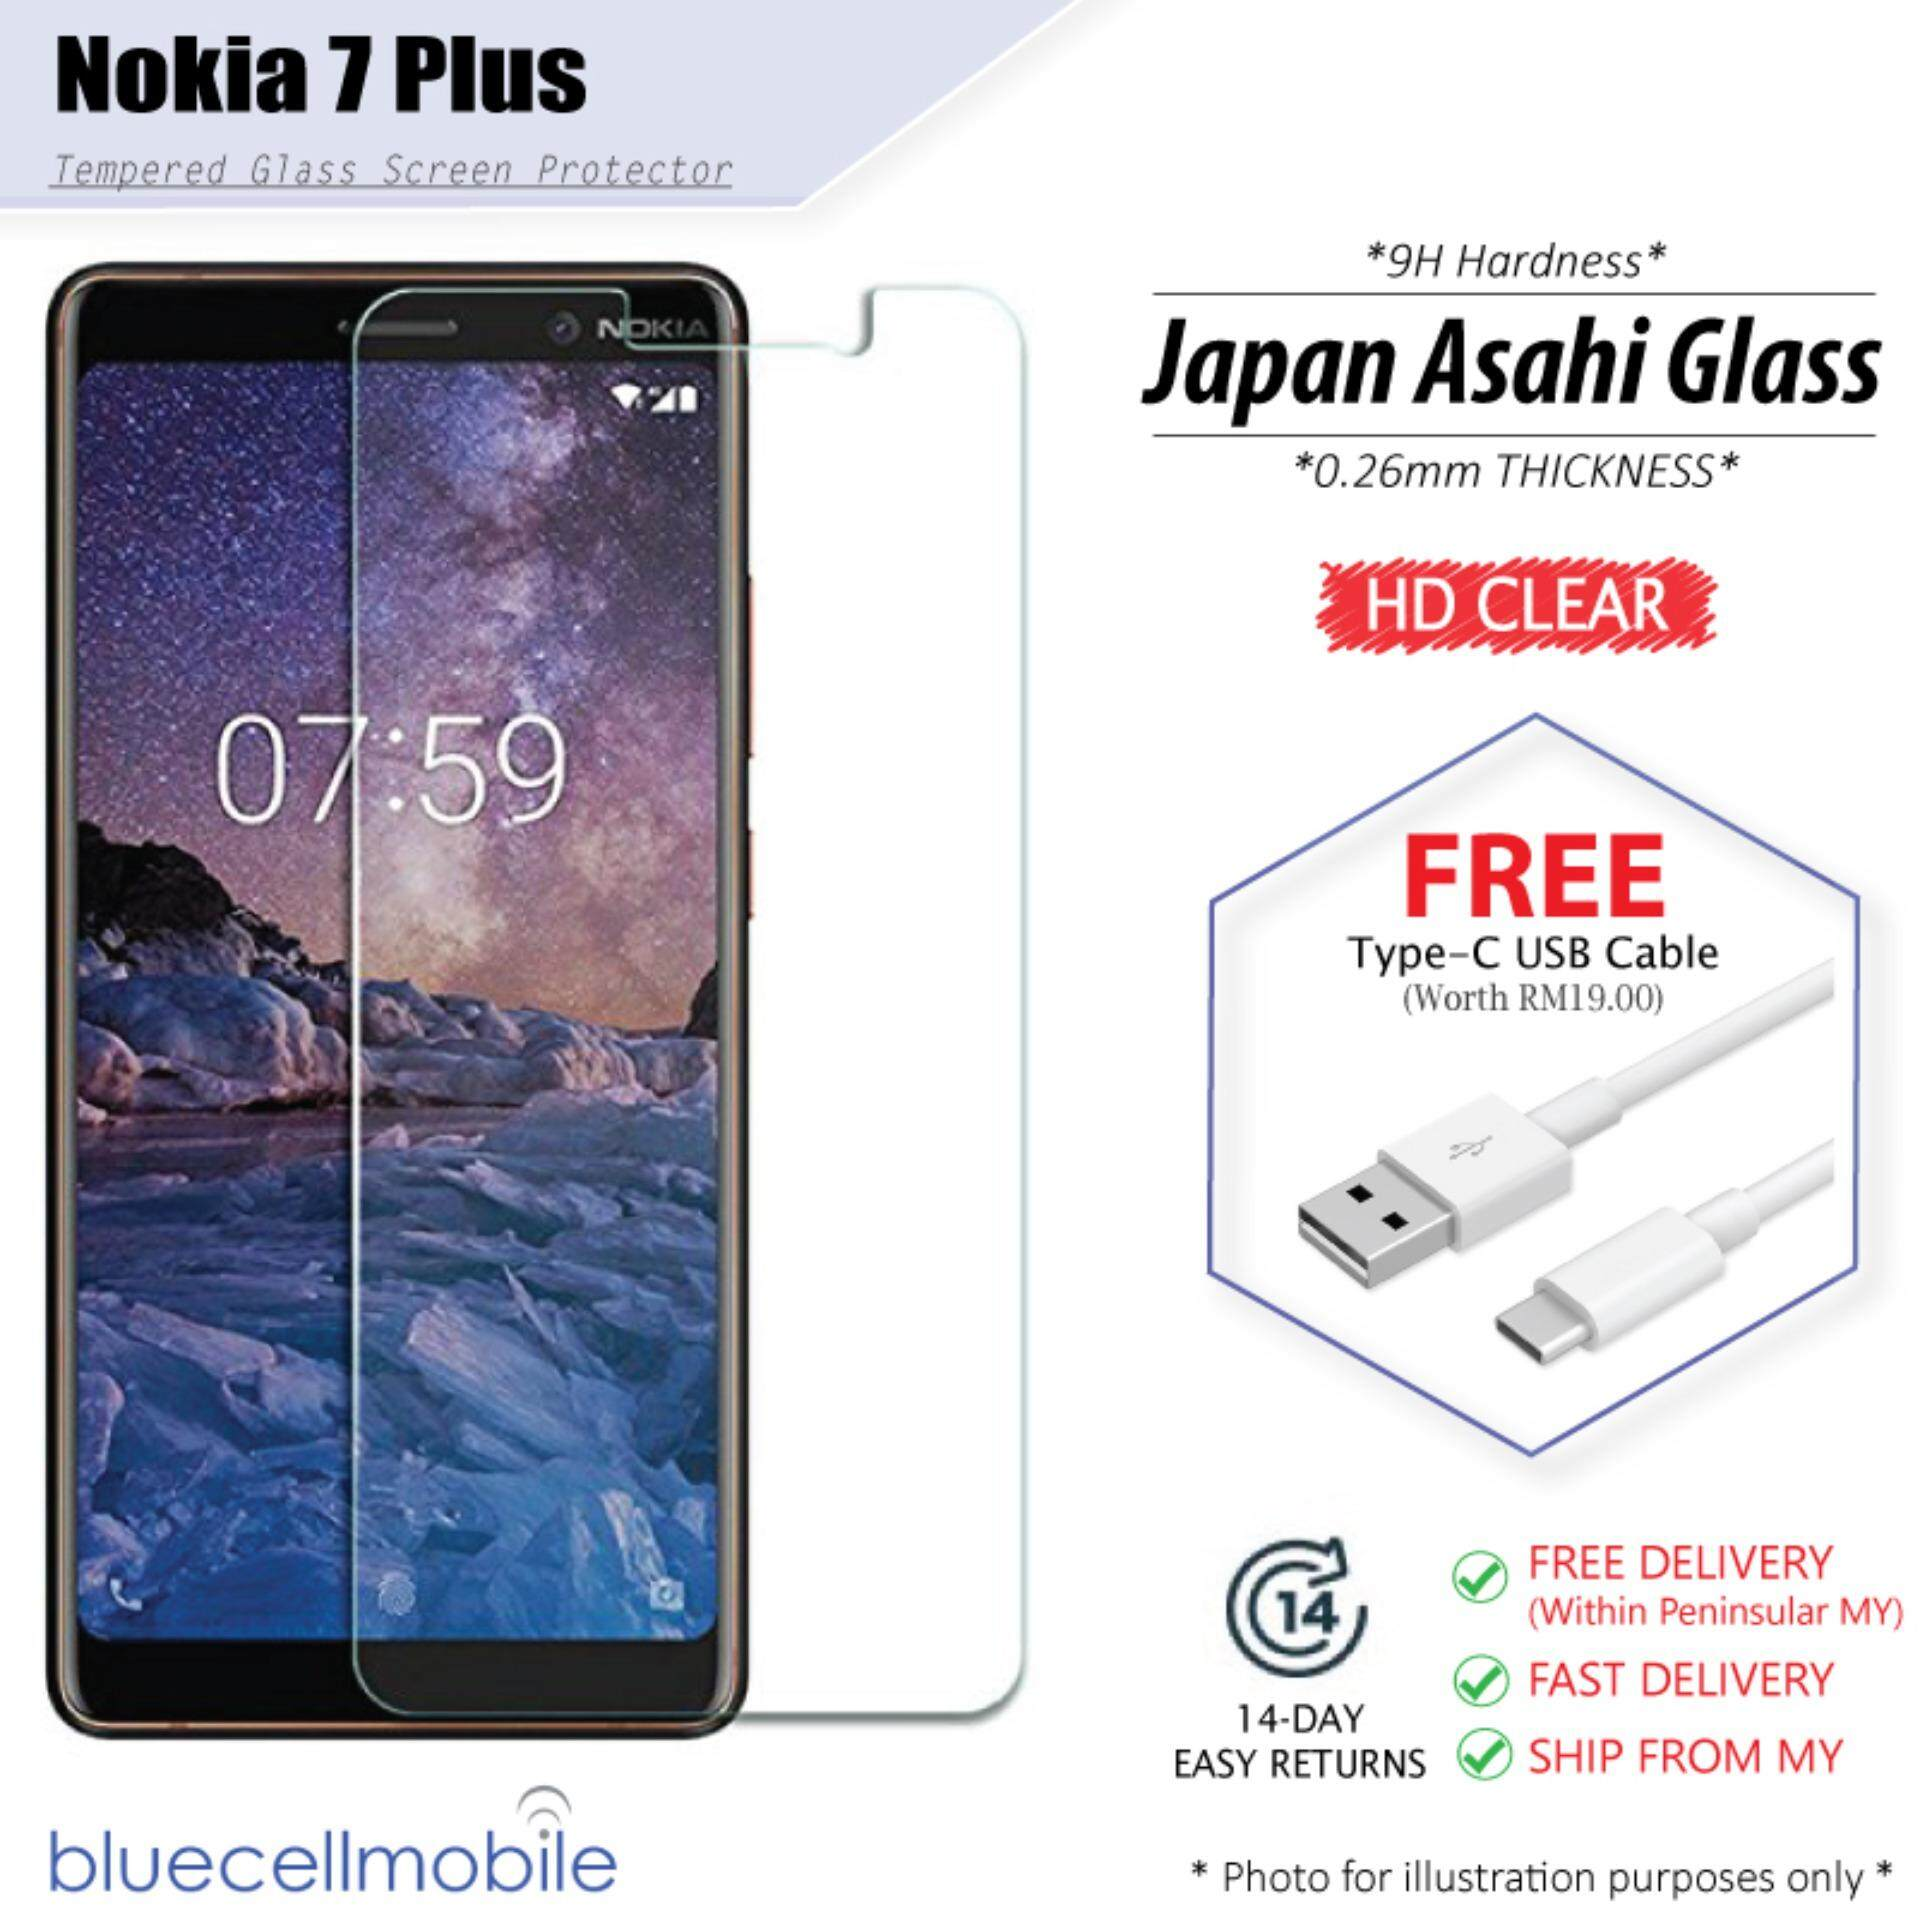 [HD] Tempered Glass For Nokia 7 Plus + FREE USB Cable